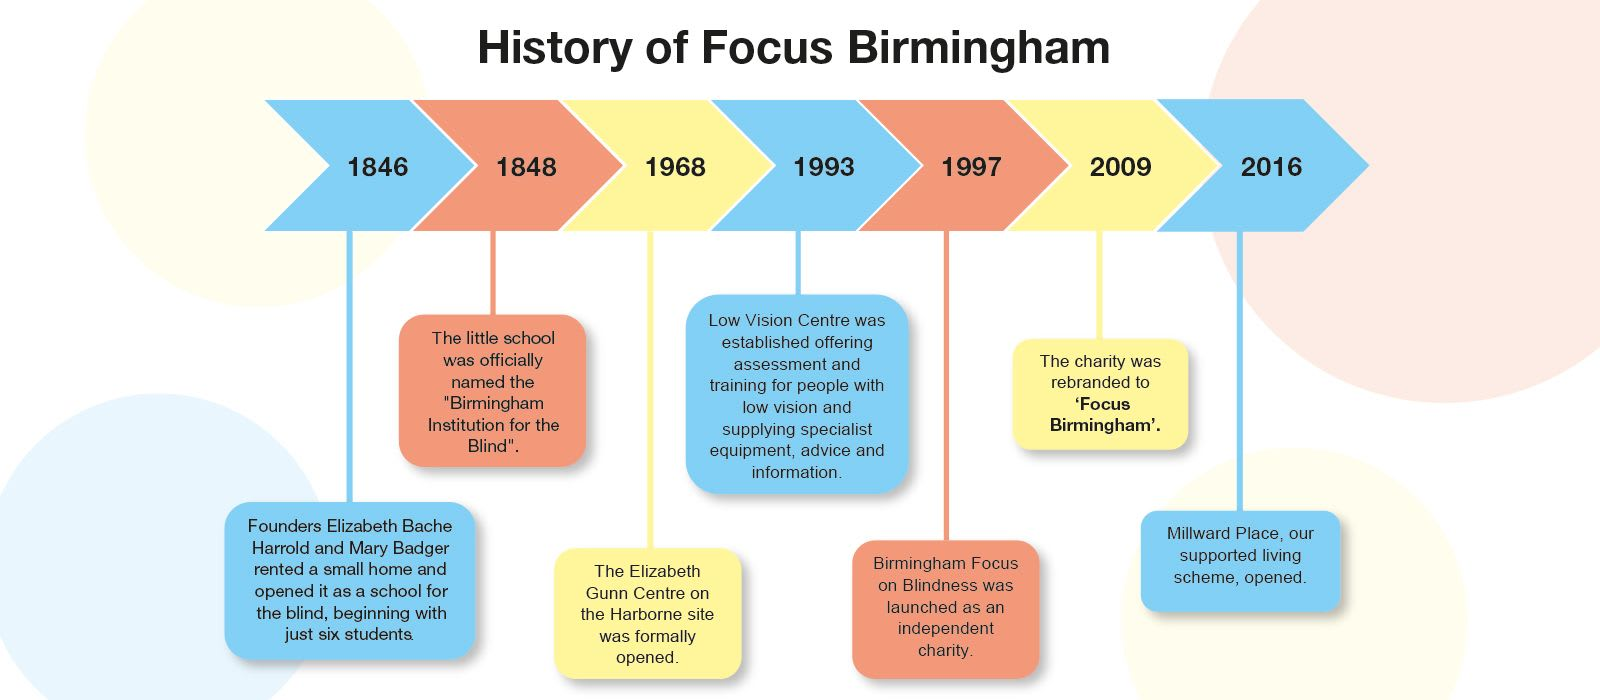 Graphic showing chronological history of Focus Birmingham